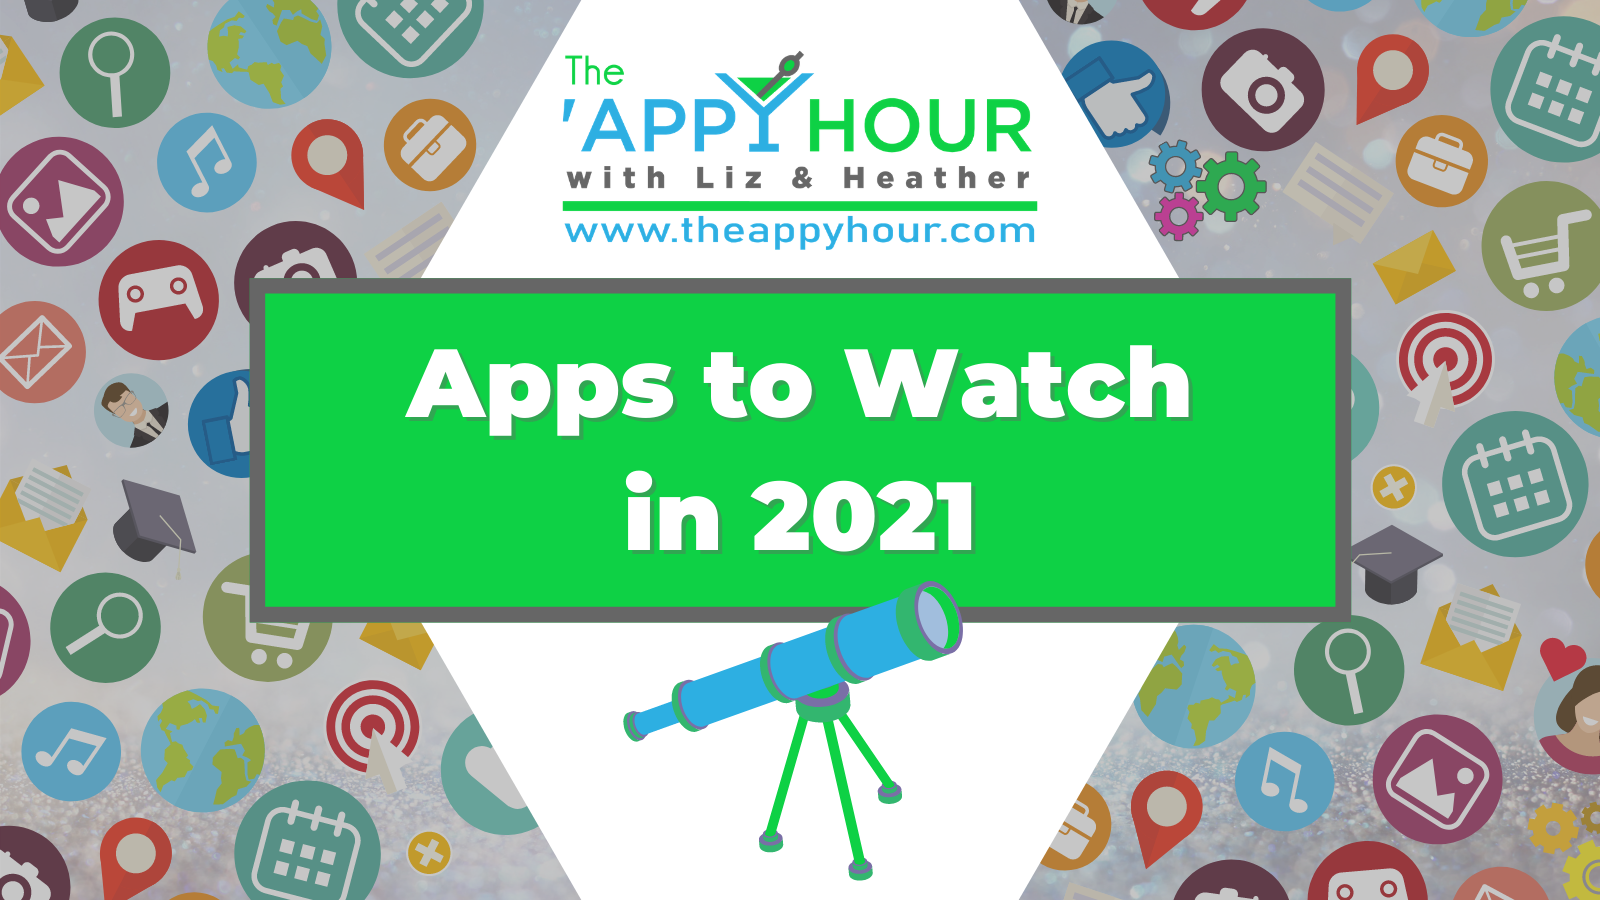 Apps to Watch in 2021